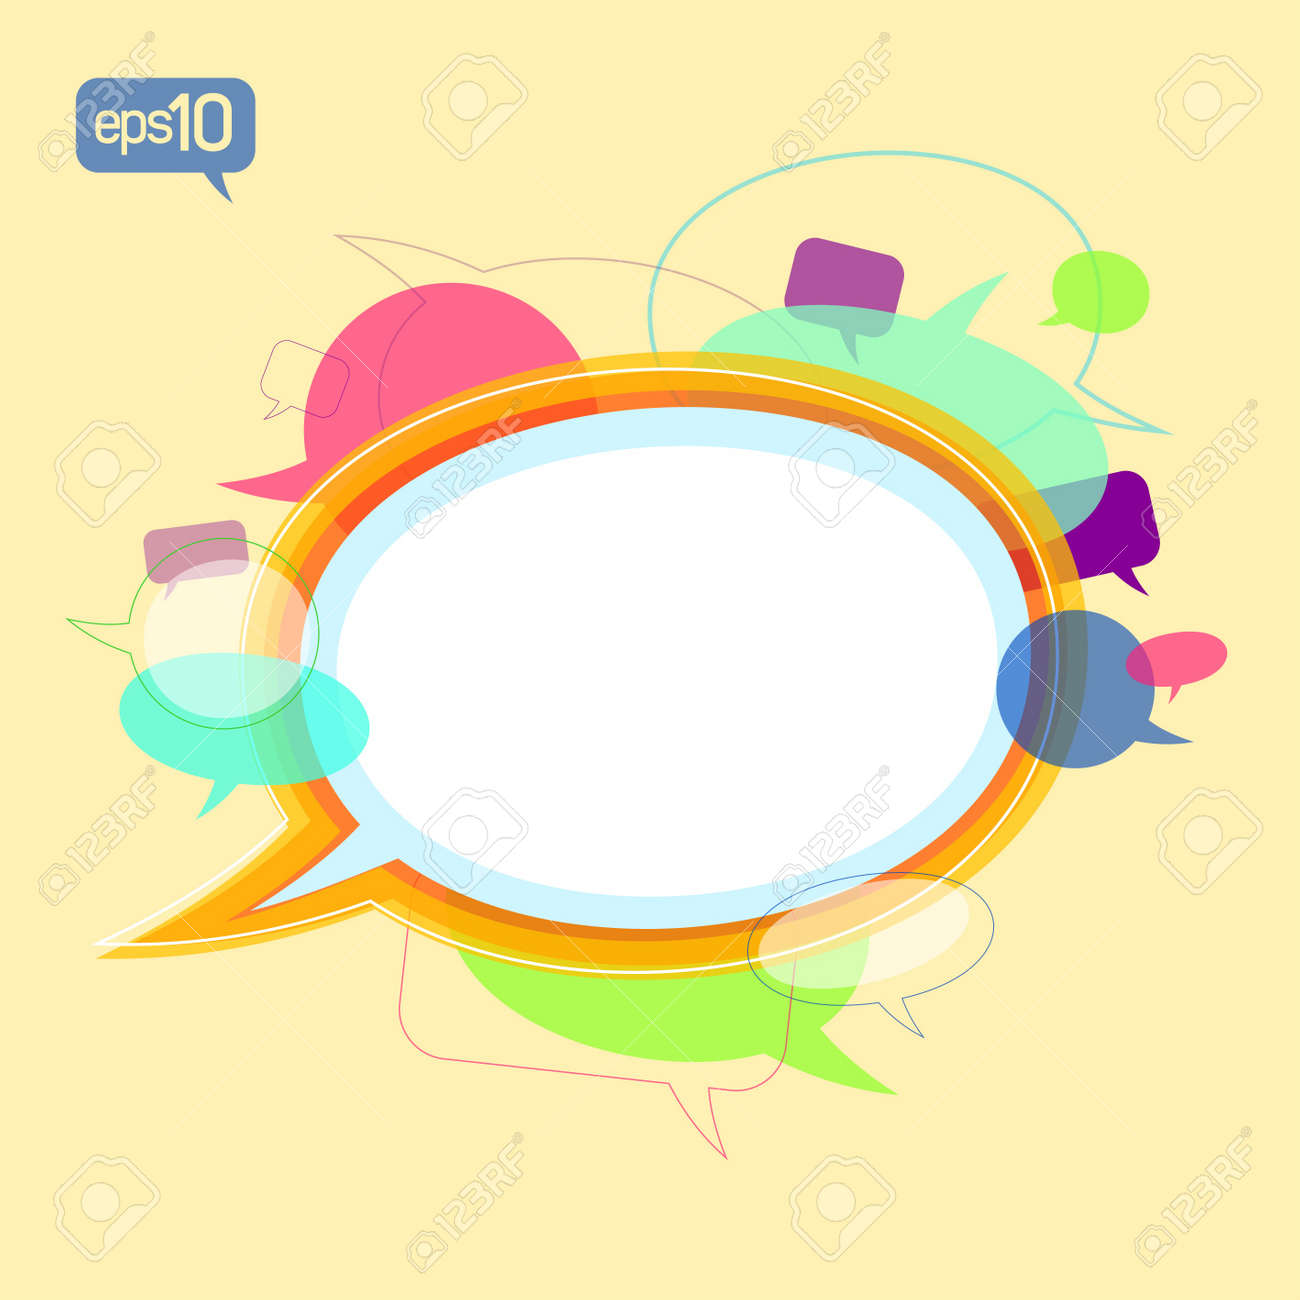 Communication concept design template with speech bubbles signs Stock Vector - 13300561